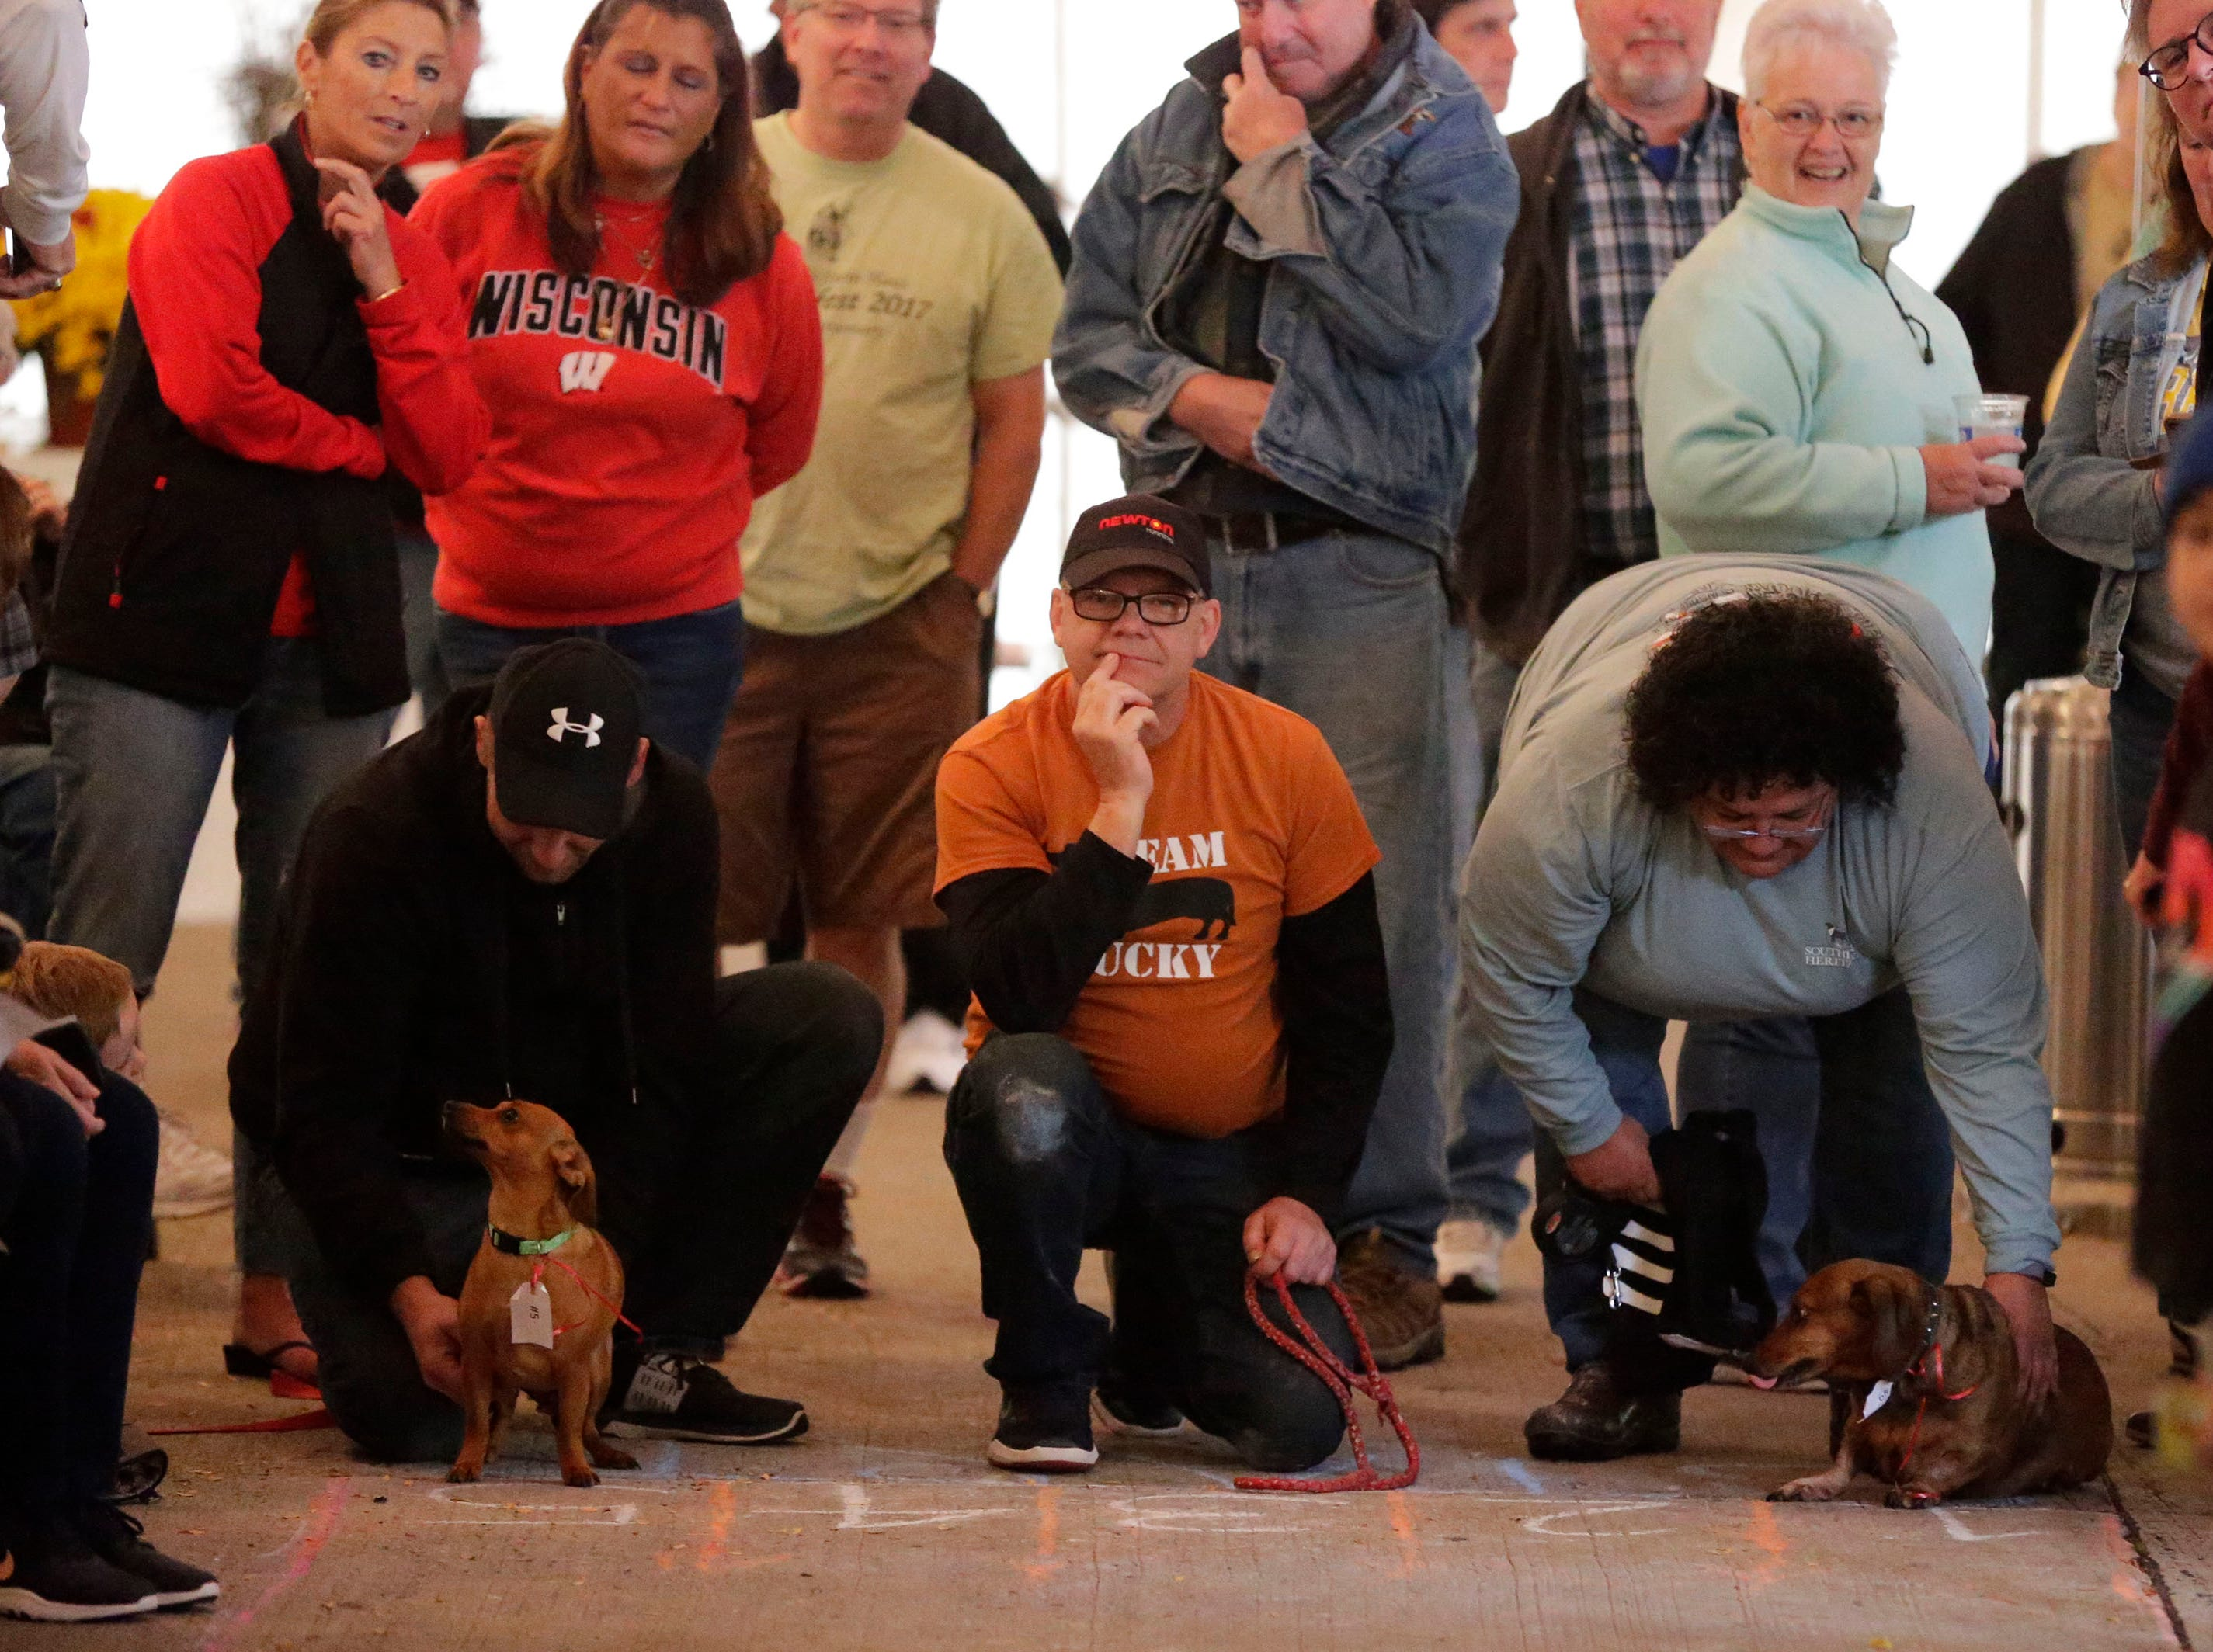 Owners and their dogs wait at the starting gate at Al and Al's Oktoberfest Weiner Dog race during their Oktoberfest festivities, Saturday October 6, 2018, in Sheboygan, Wis.